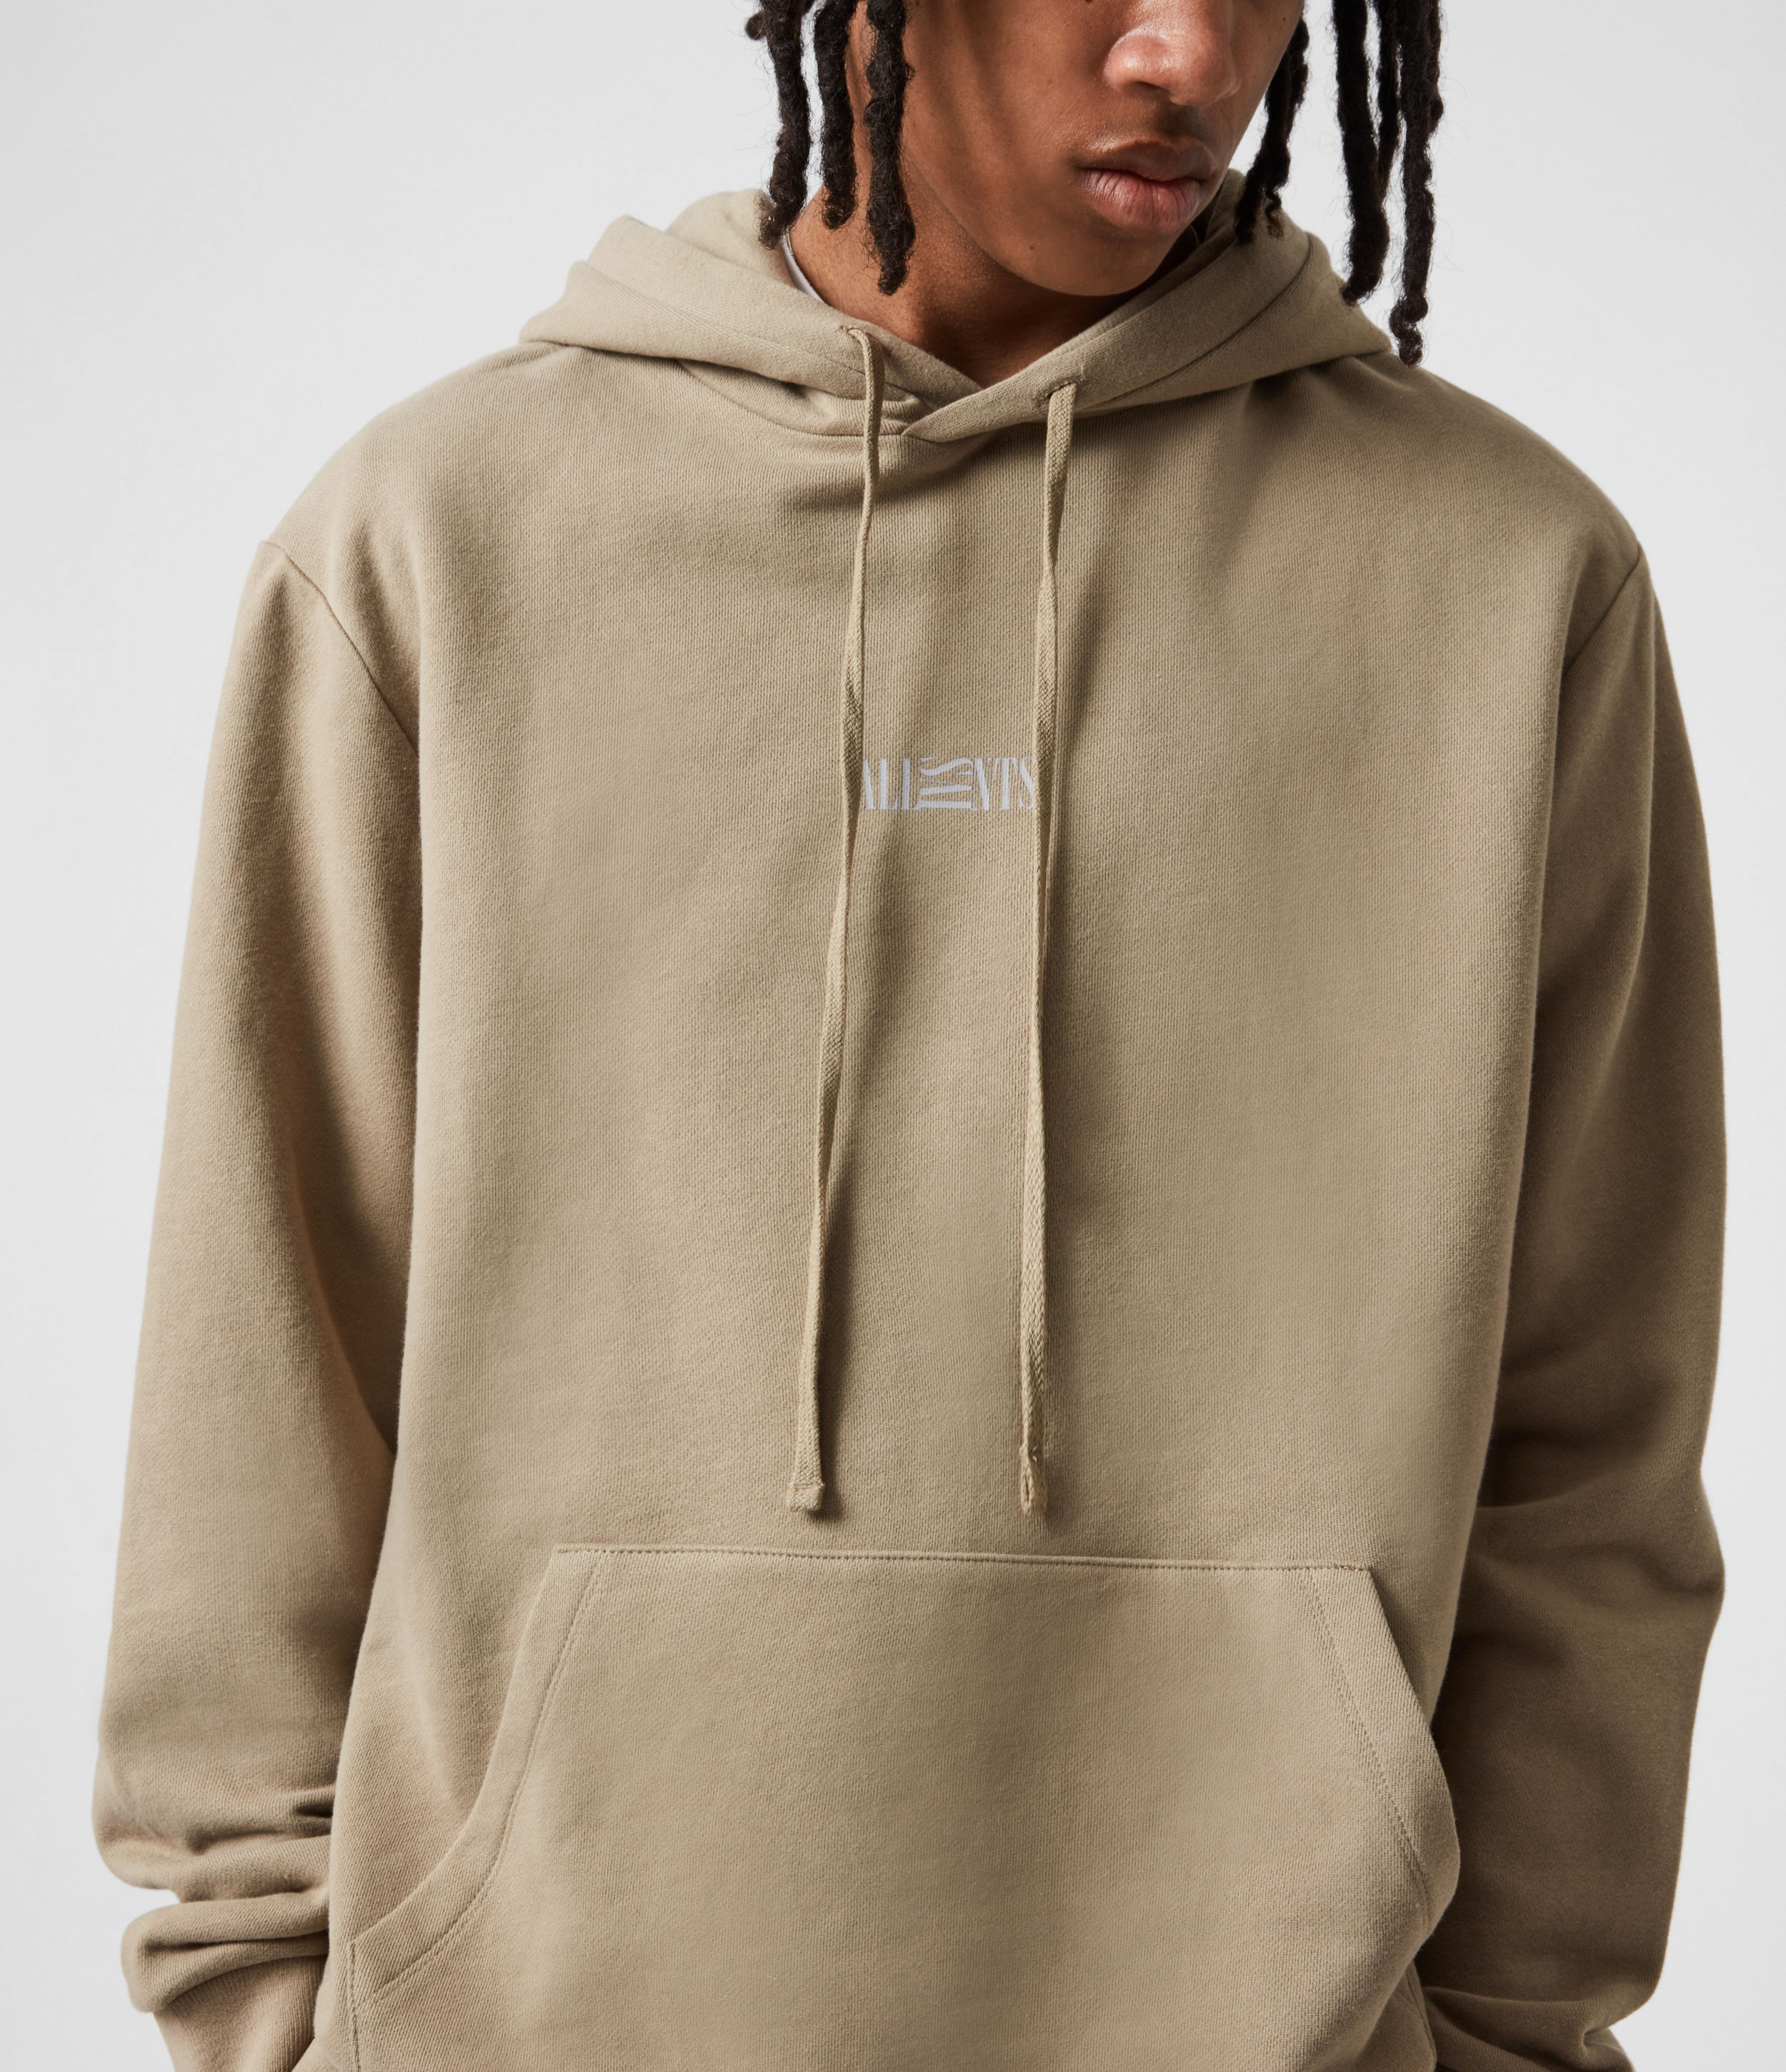 AllSaints Men's Opposition Hoodie, Pewter Grey, Size: XS